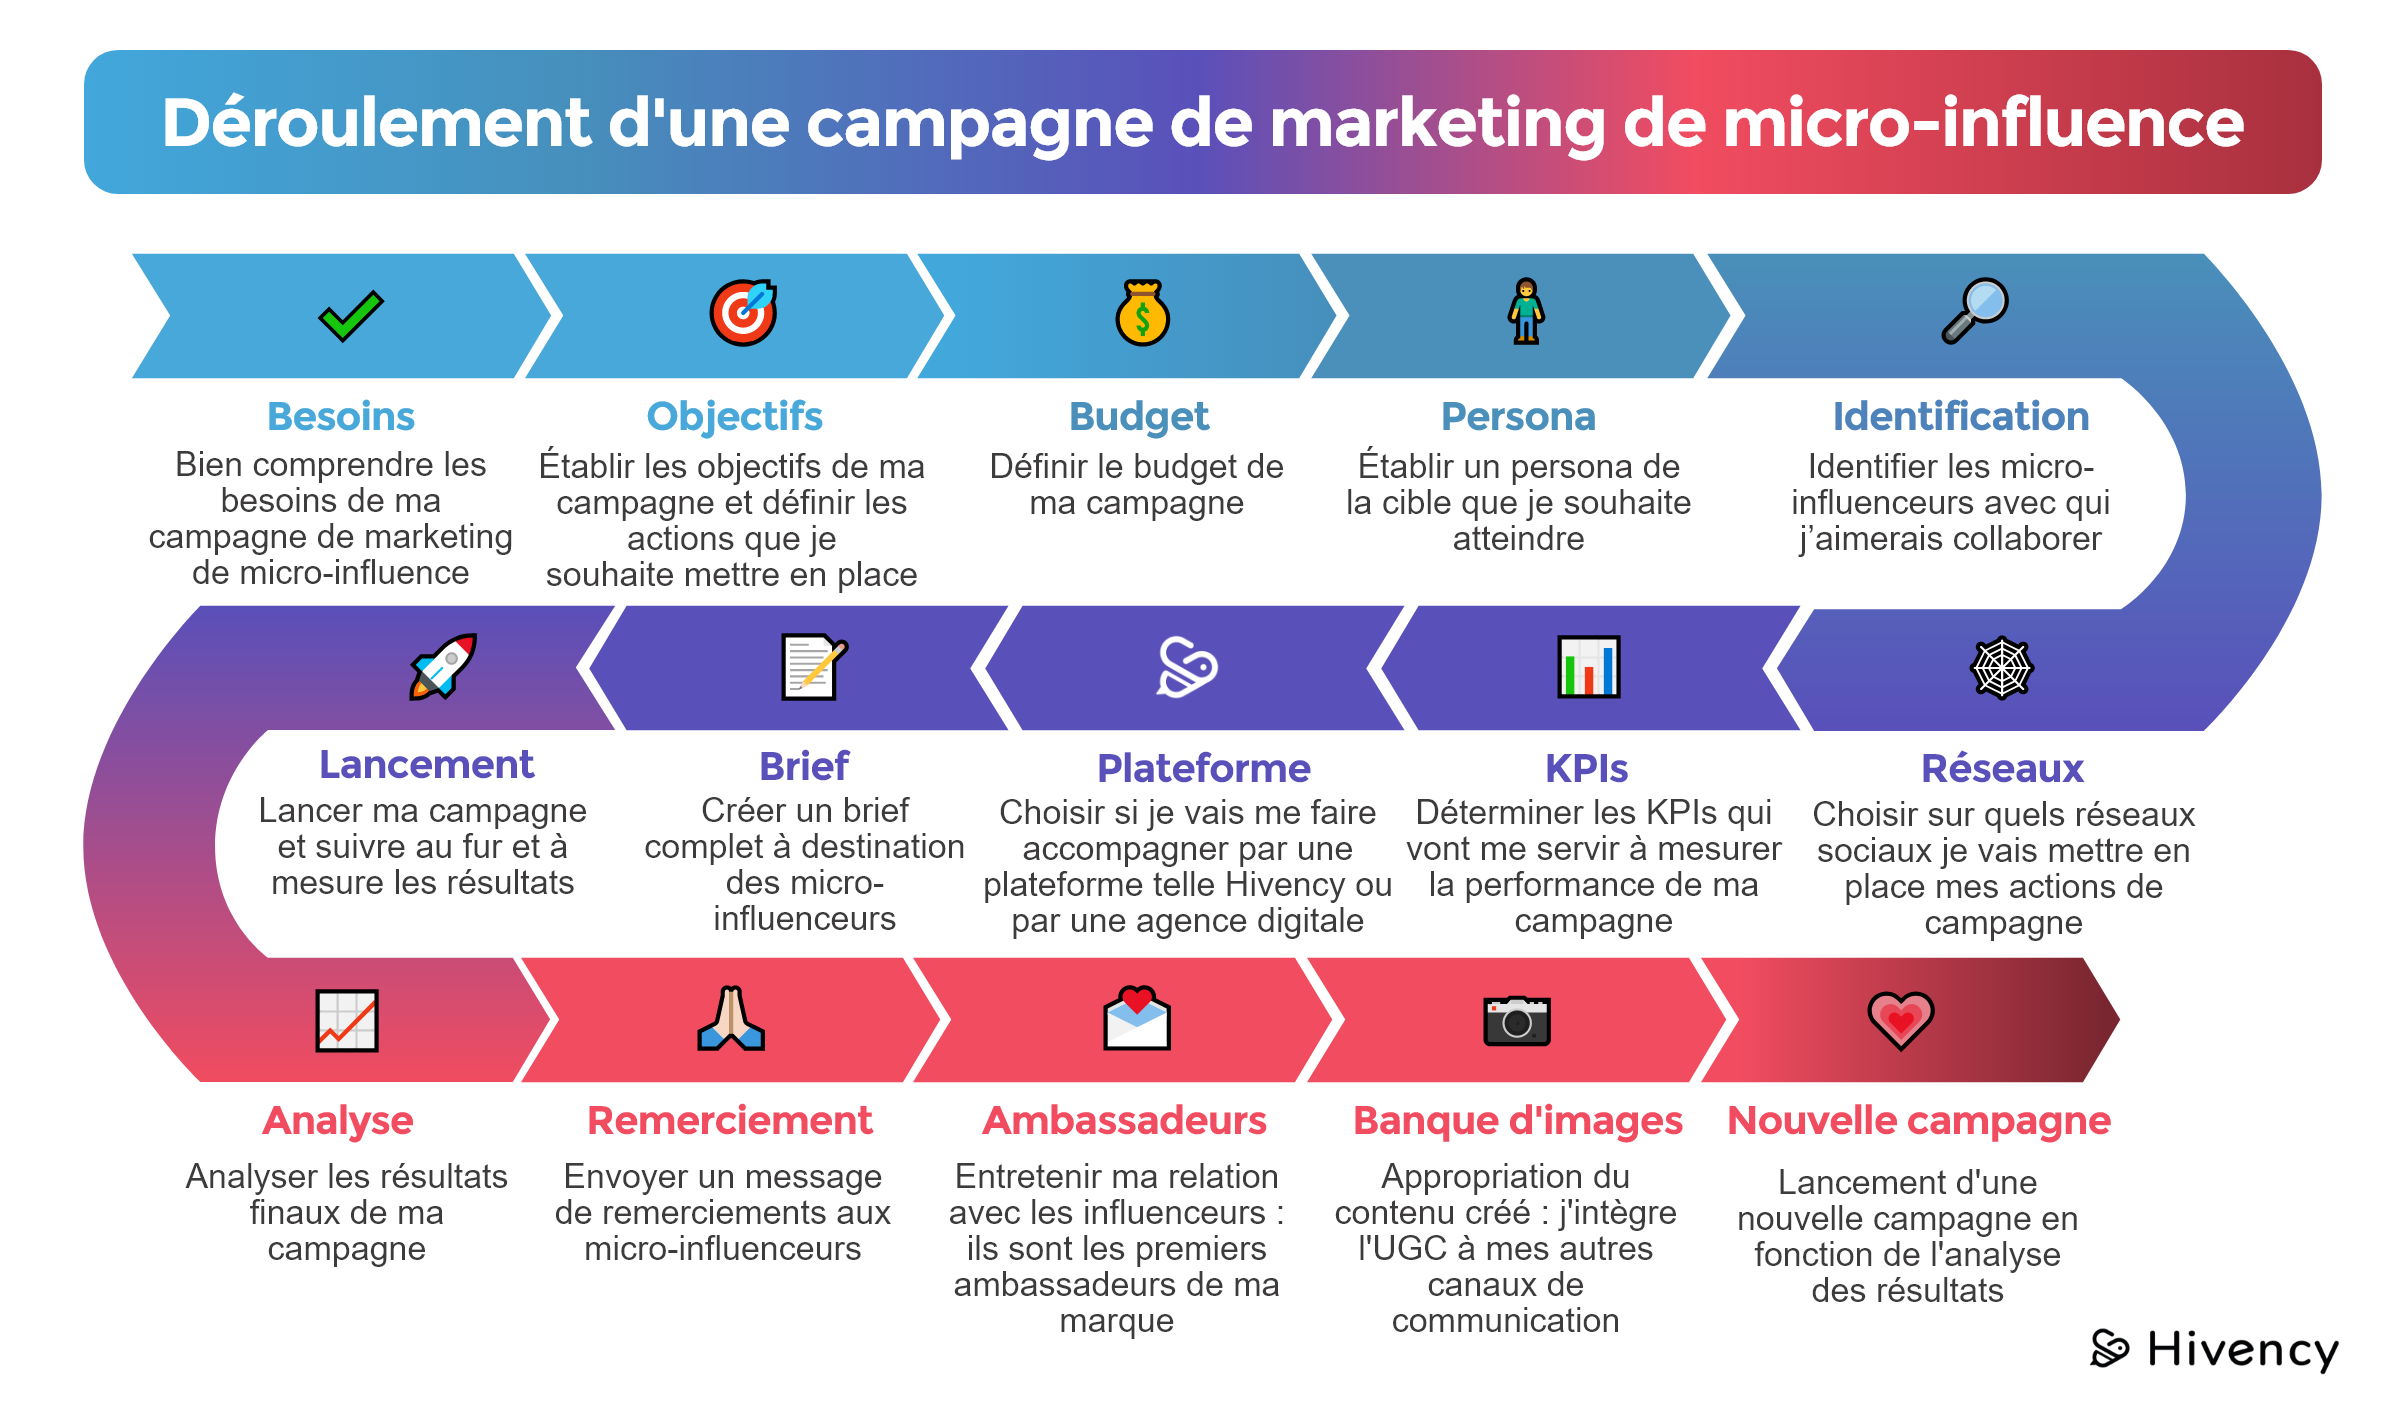 © Infographie Hivency